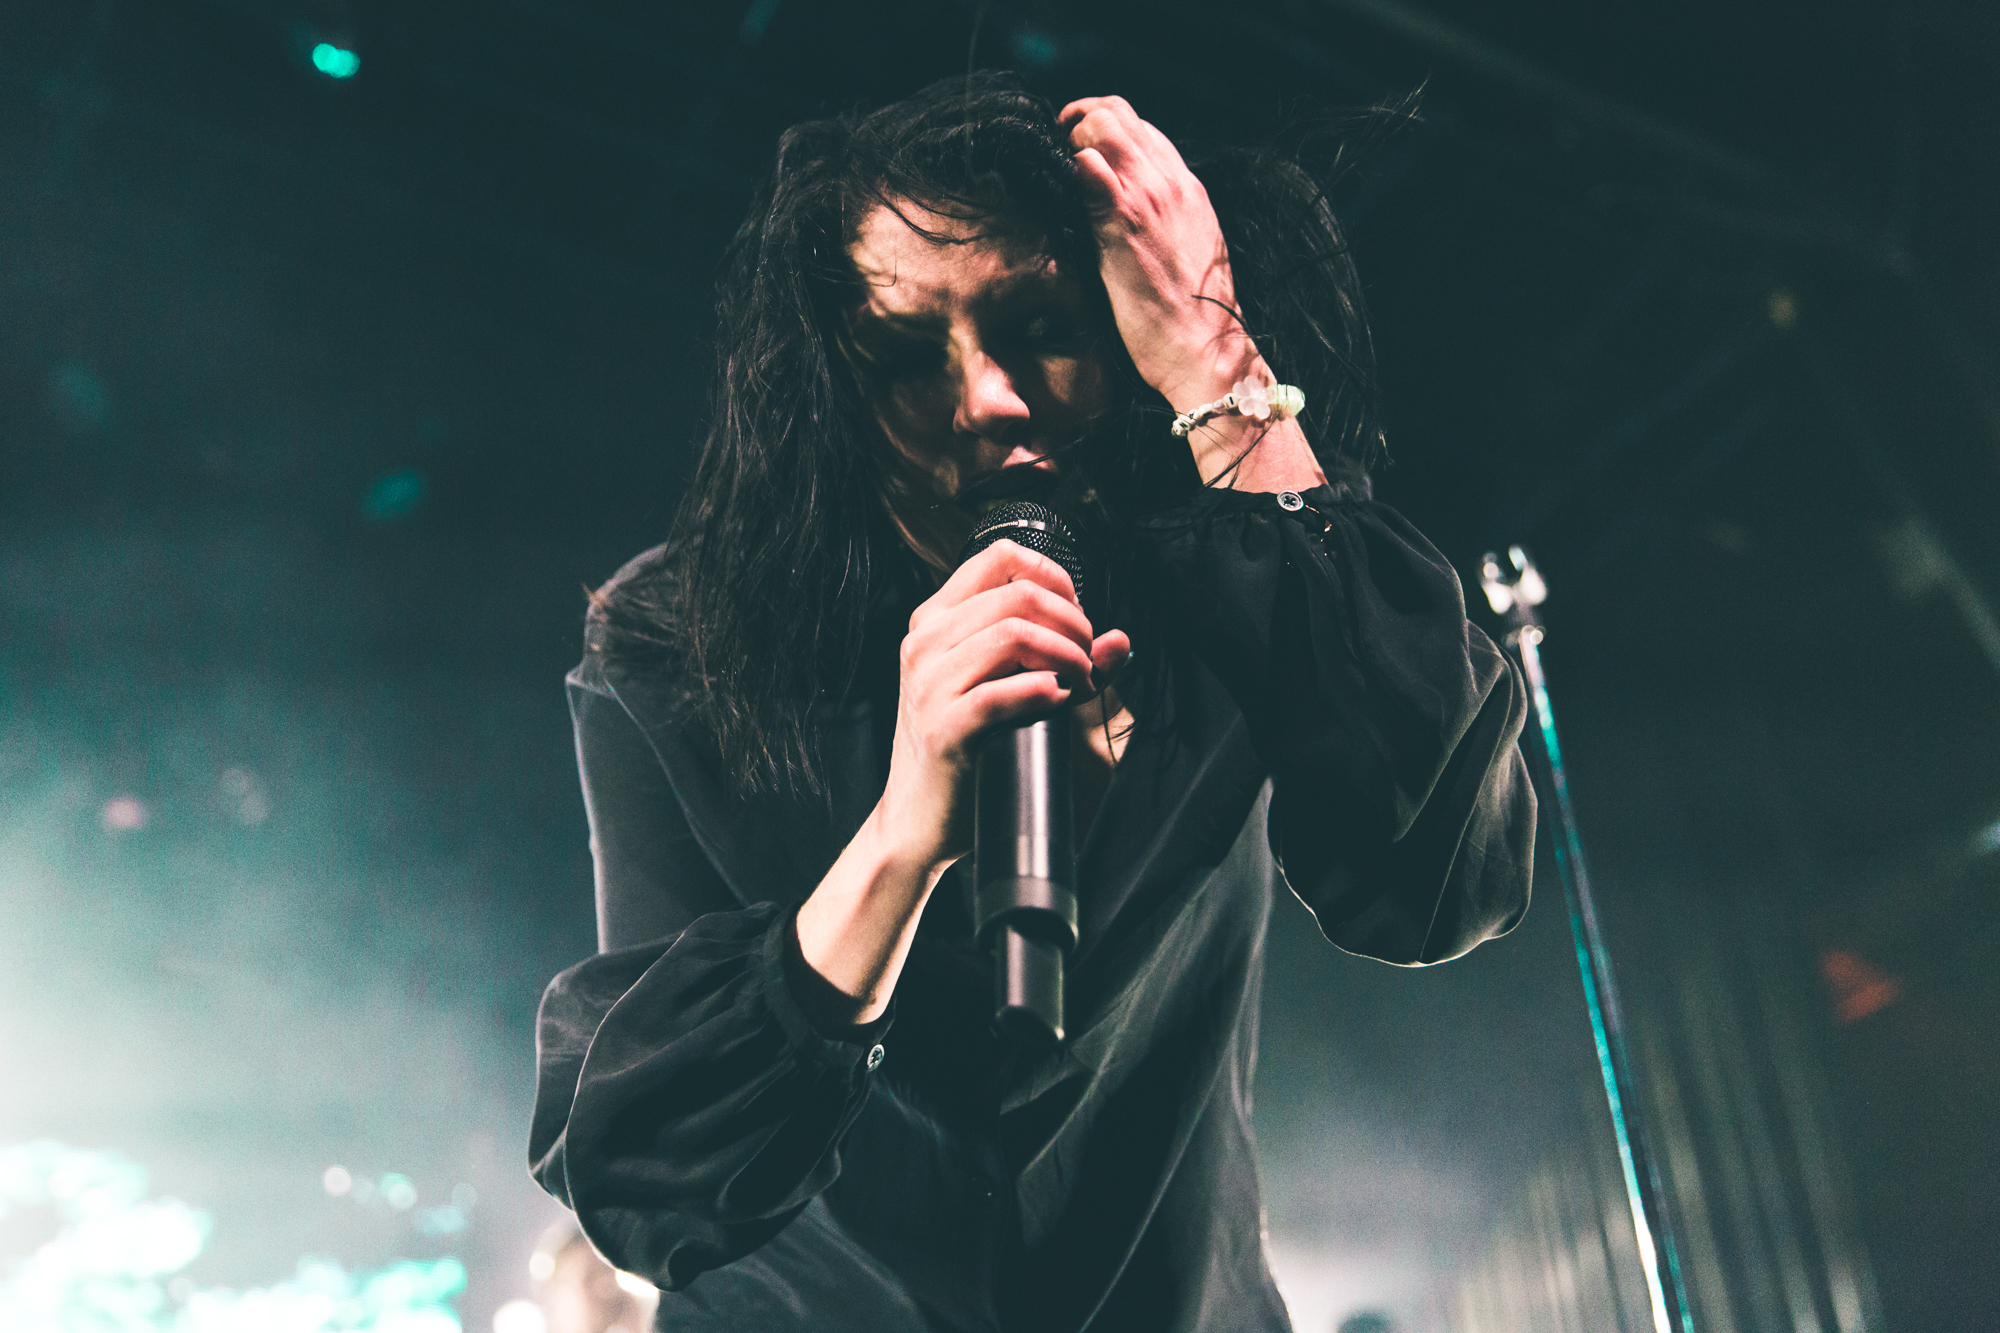 K. Flay (by Alex Lyon)